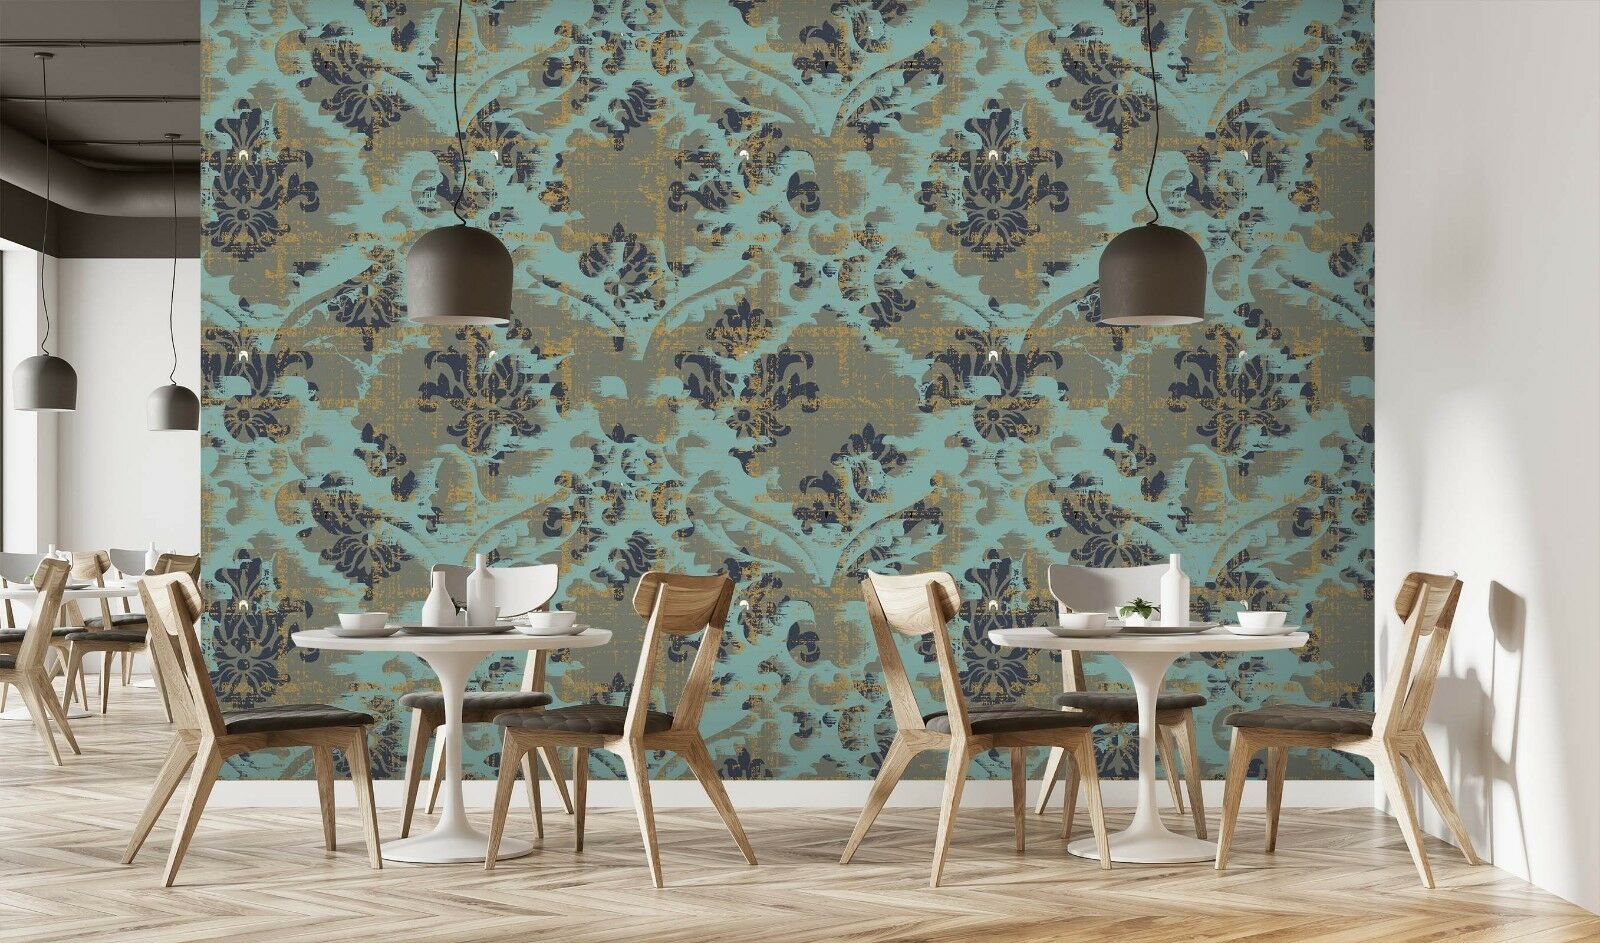 3D  Floral Retro Paint 3 Texture Tiles Marble Wall Paper Decal Wallpaper Mural